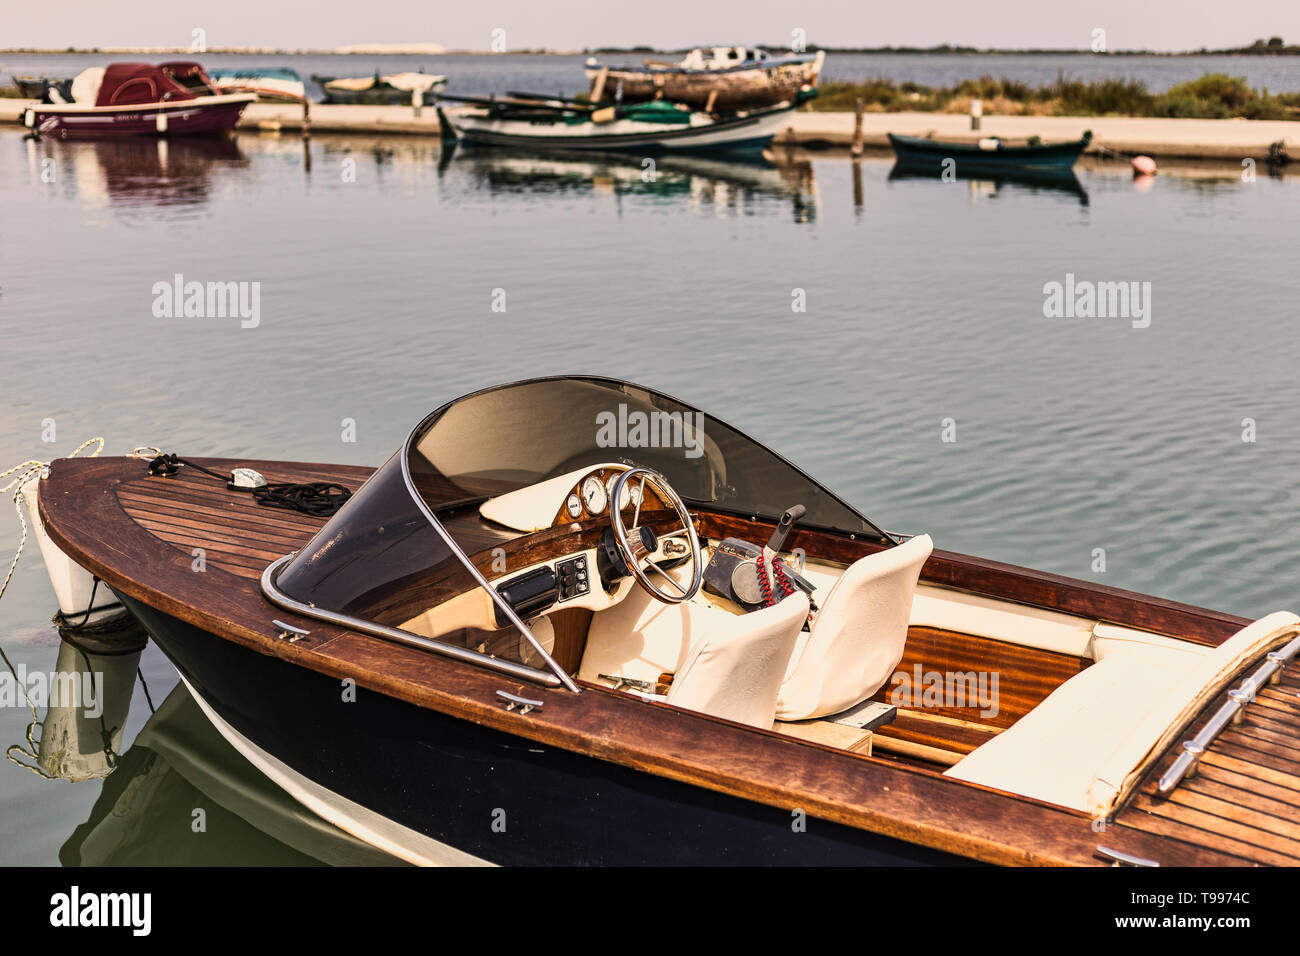 Close-up view of old speed boat in retro style Stock Photo